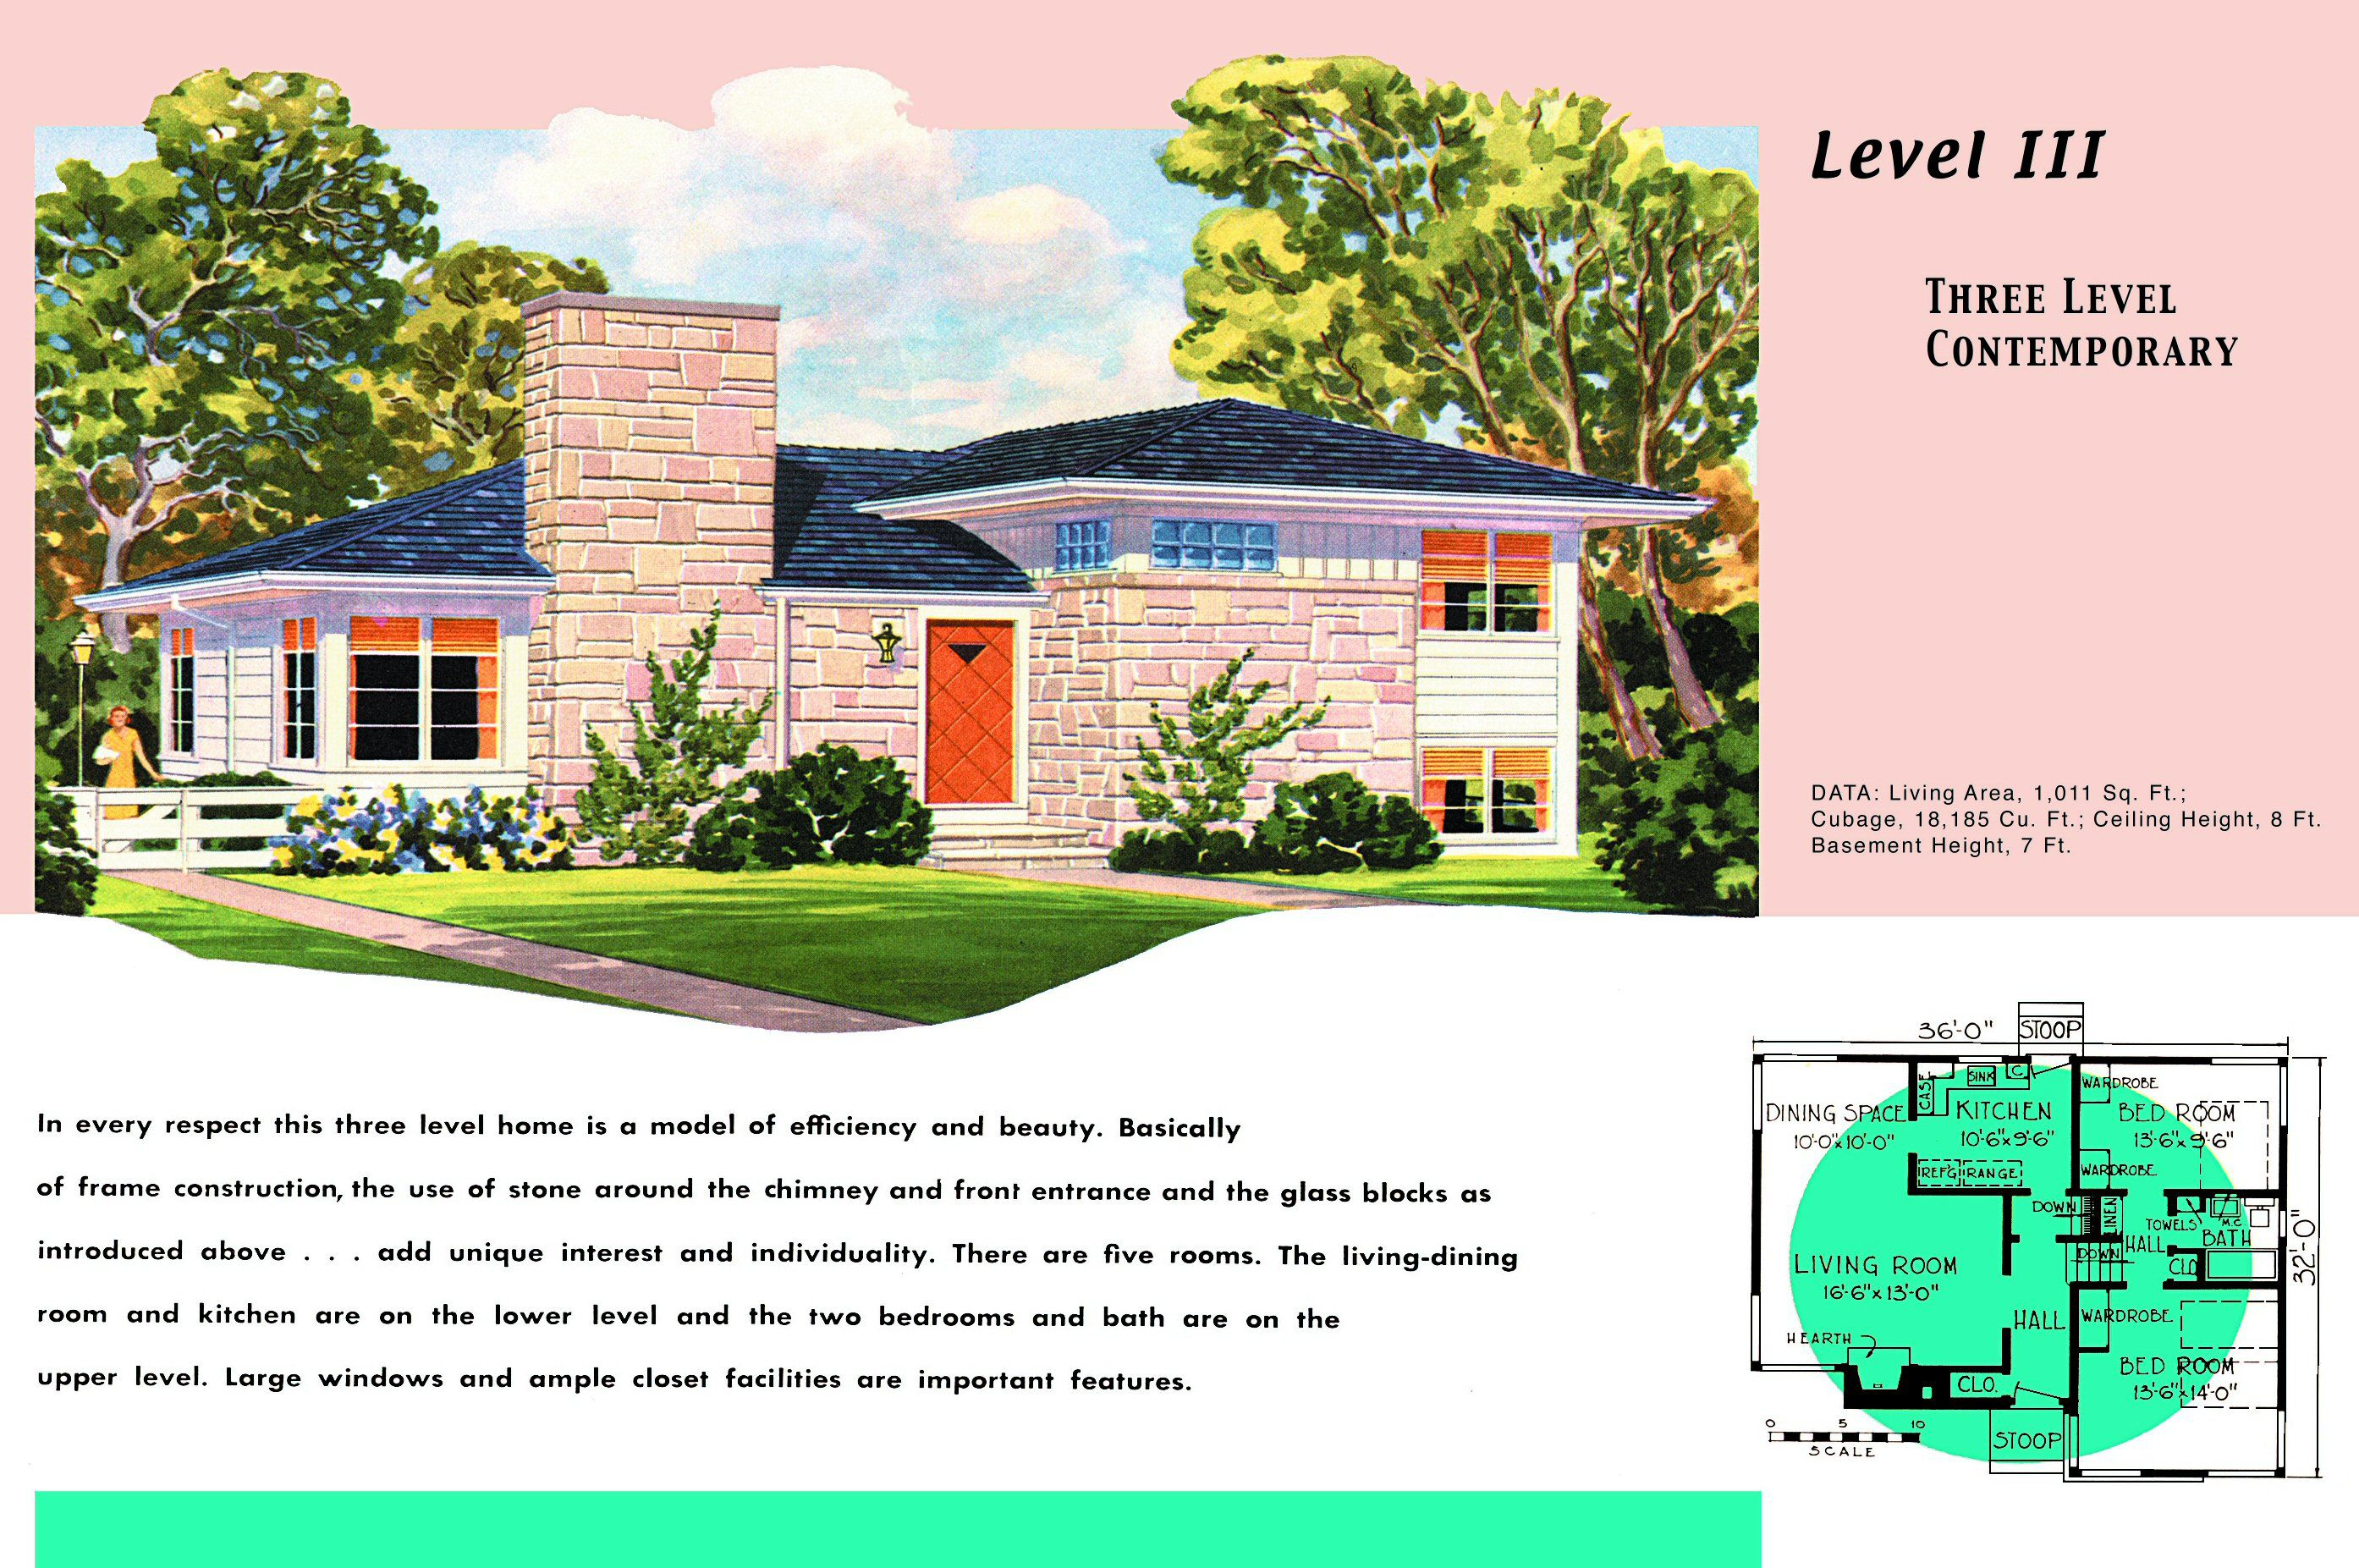 1950s House Plans for Por Ranch Homes on